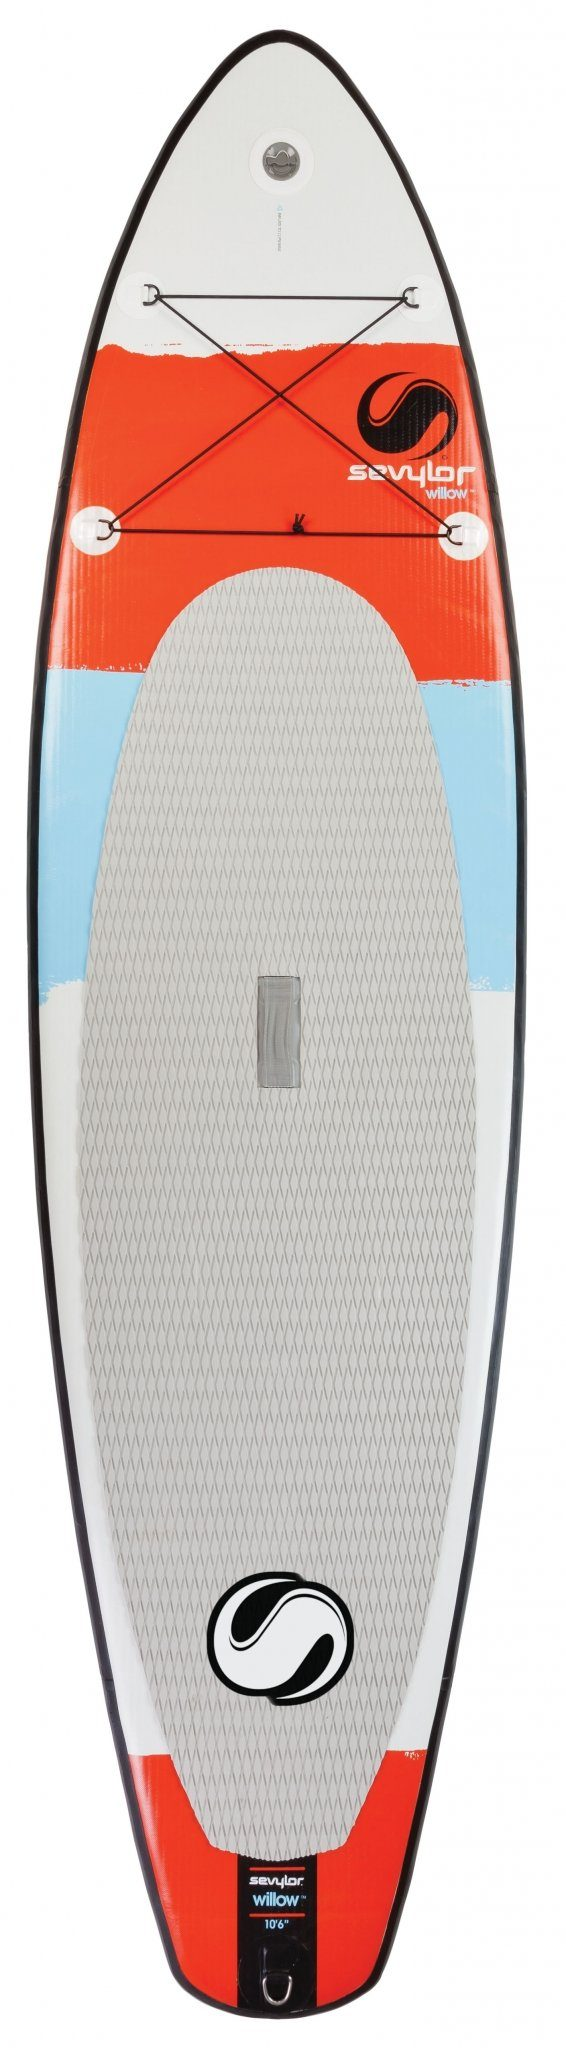 Sevylor Schwimmbrett »Willow SUP Board«